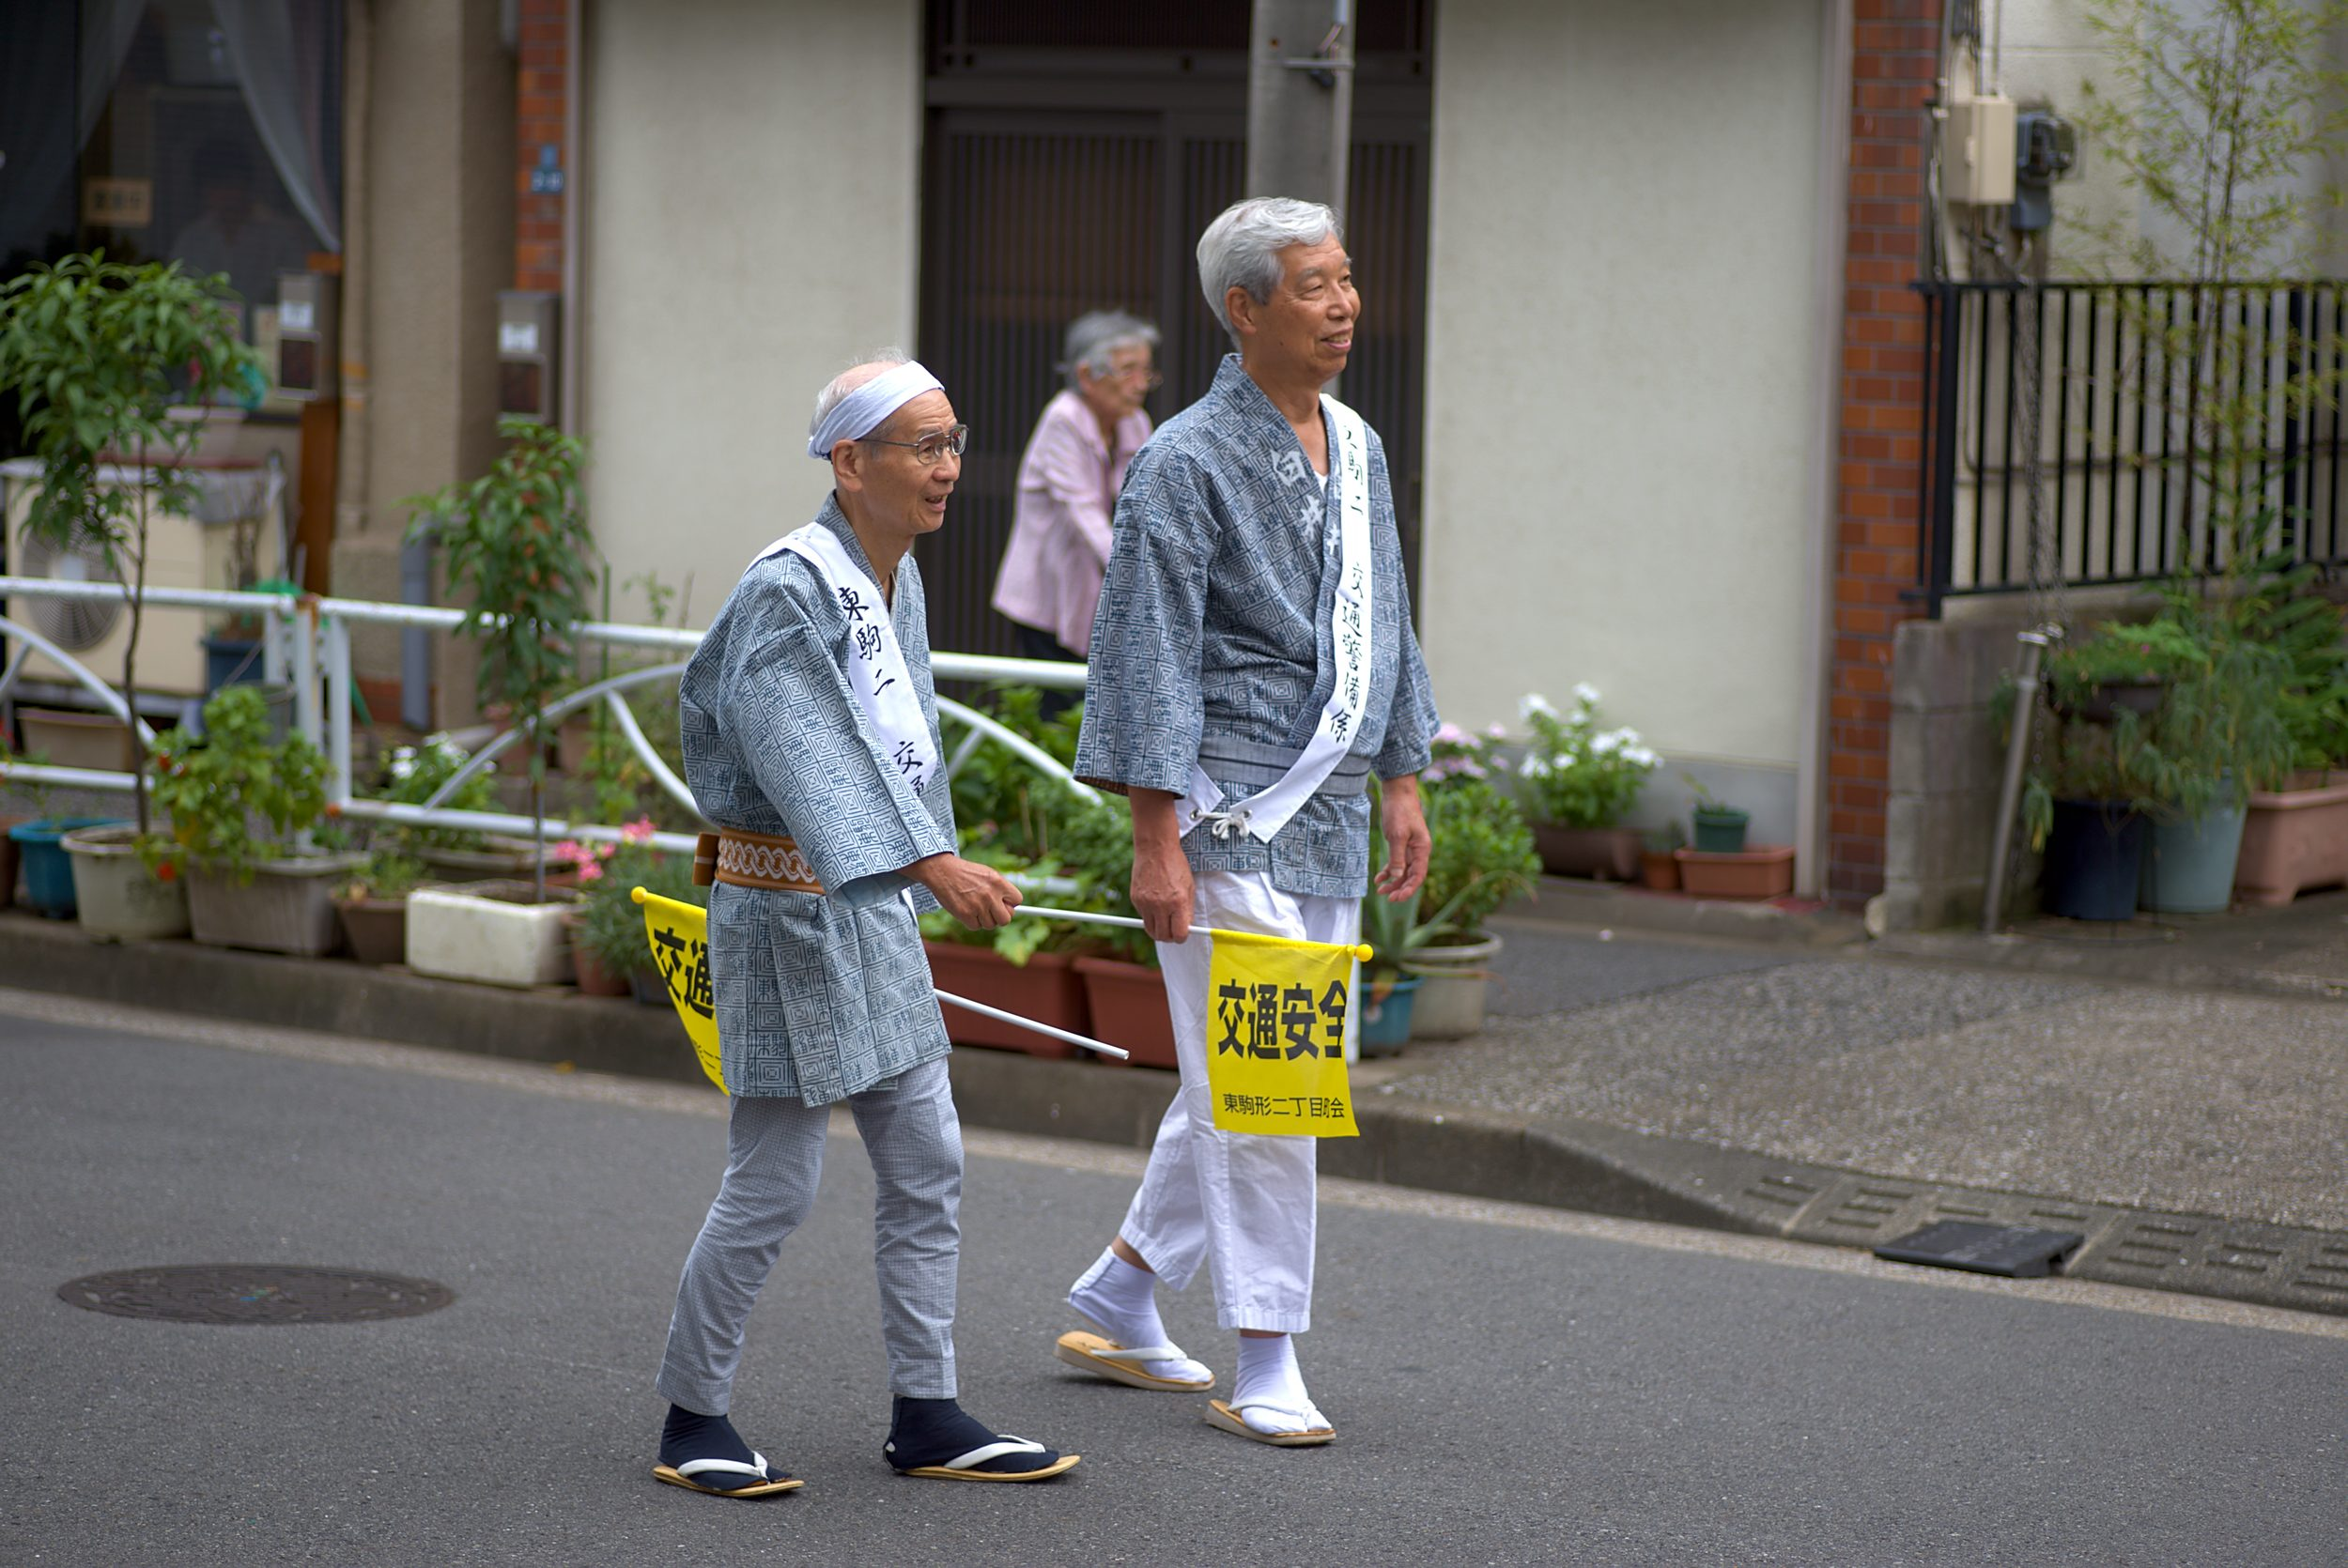 Two old man walking on the street with small yellow flags